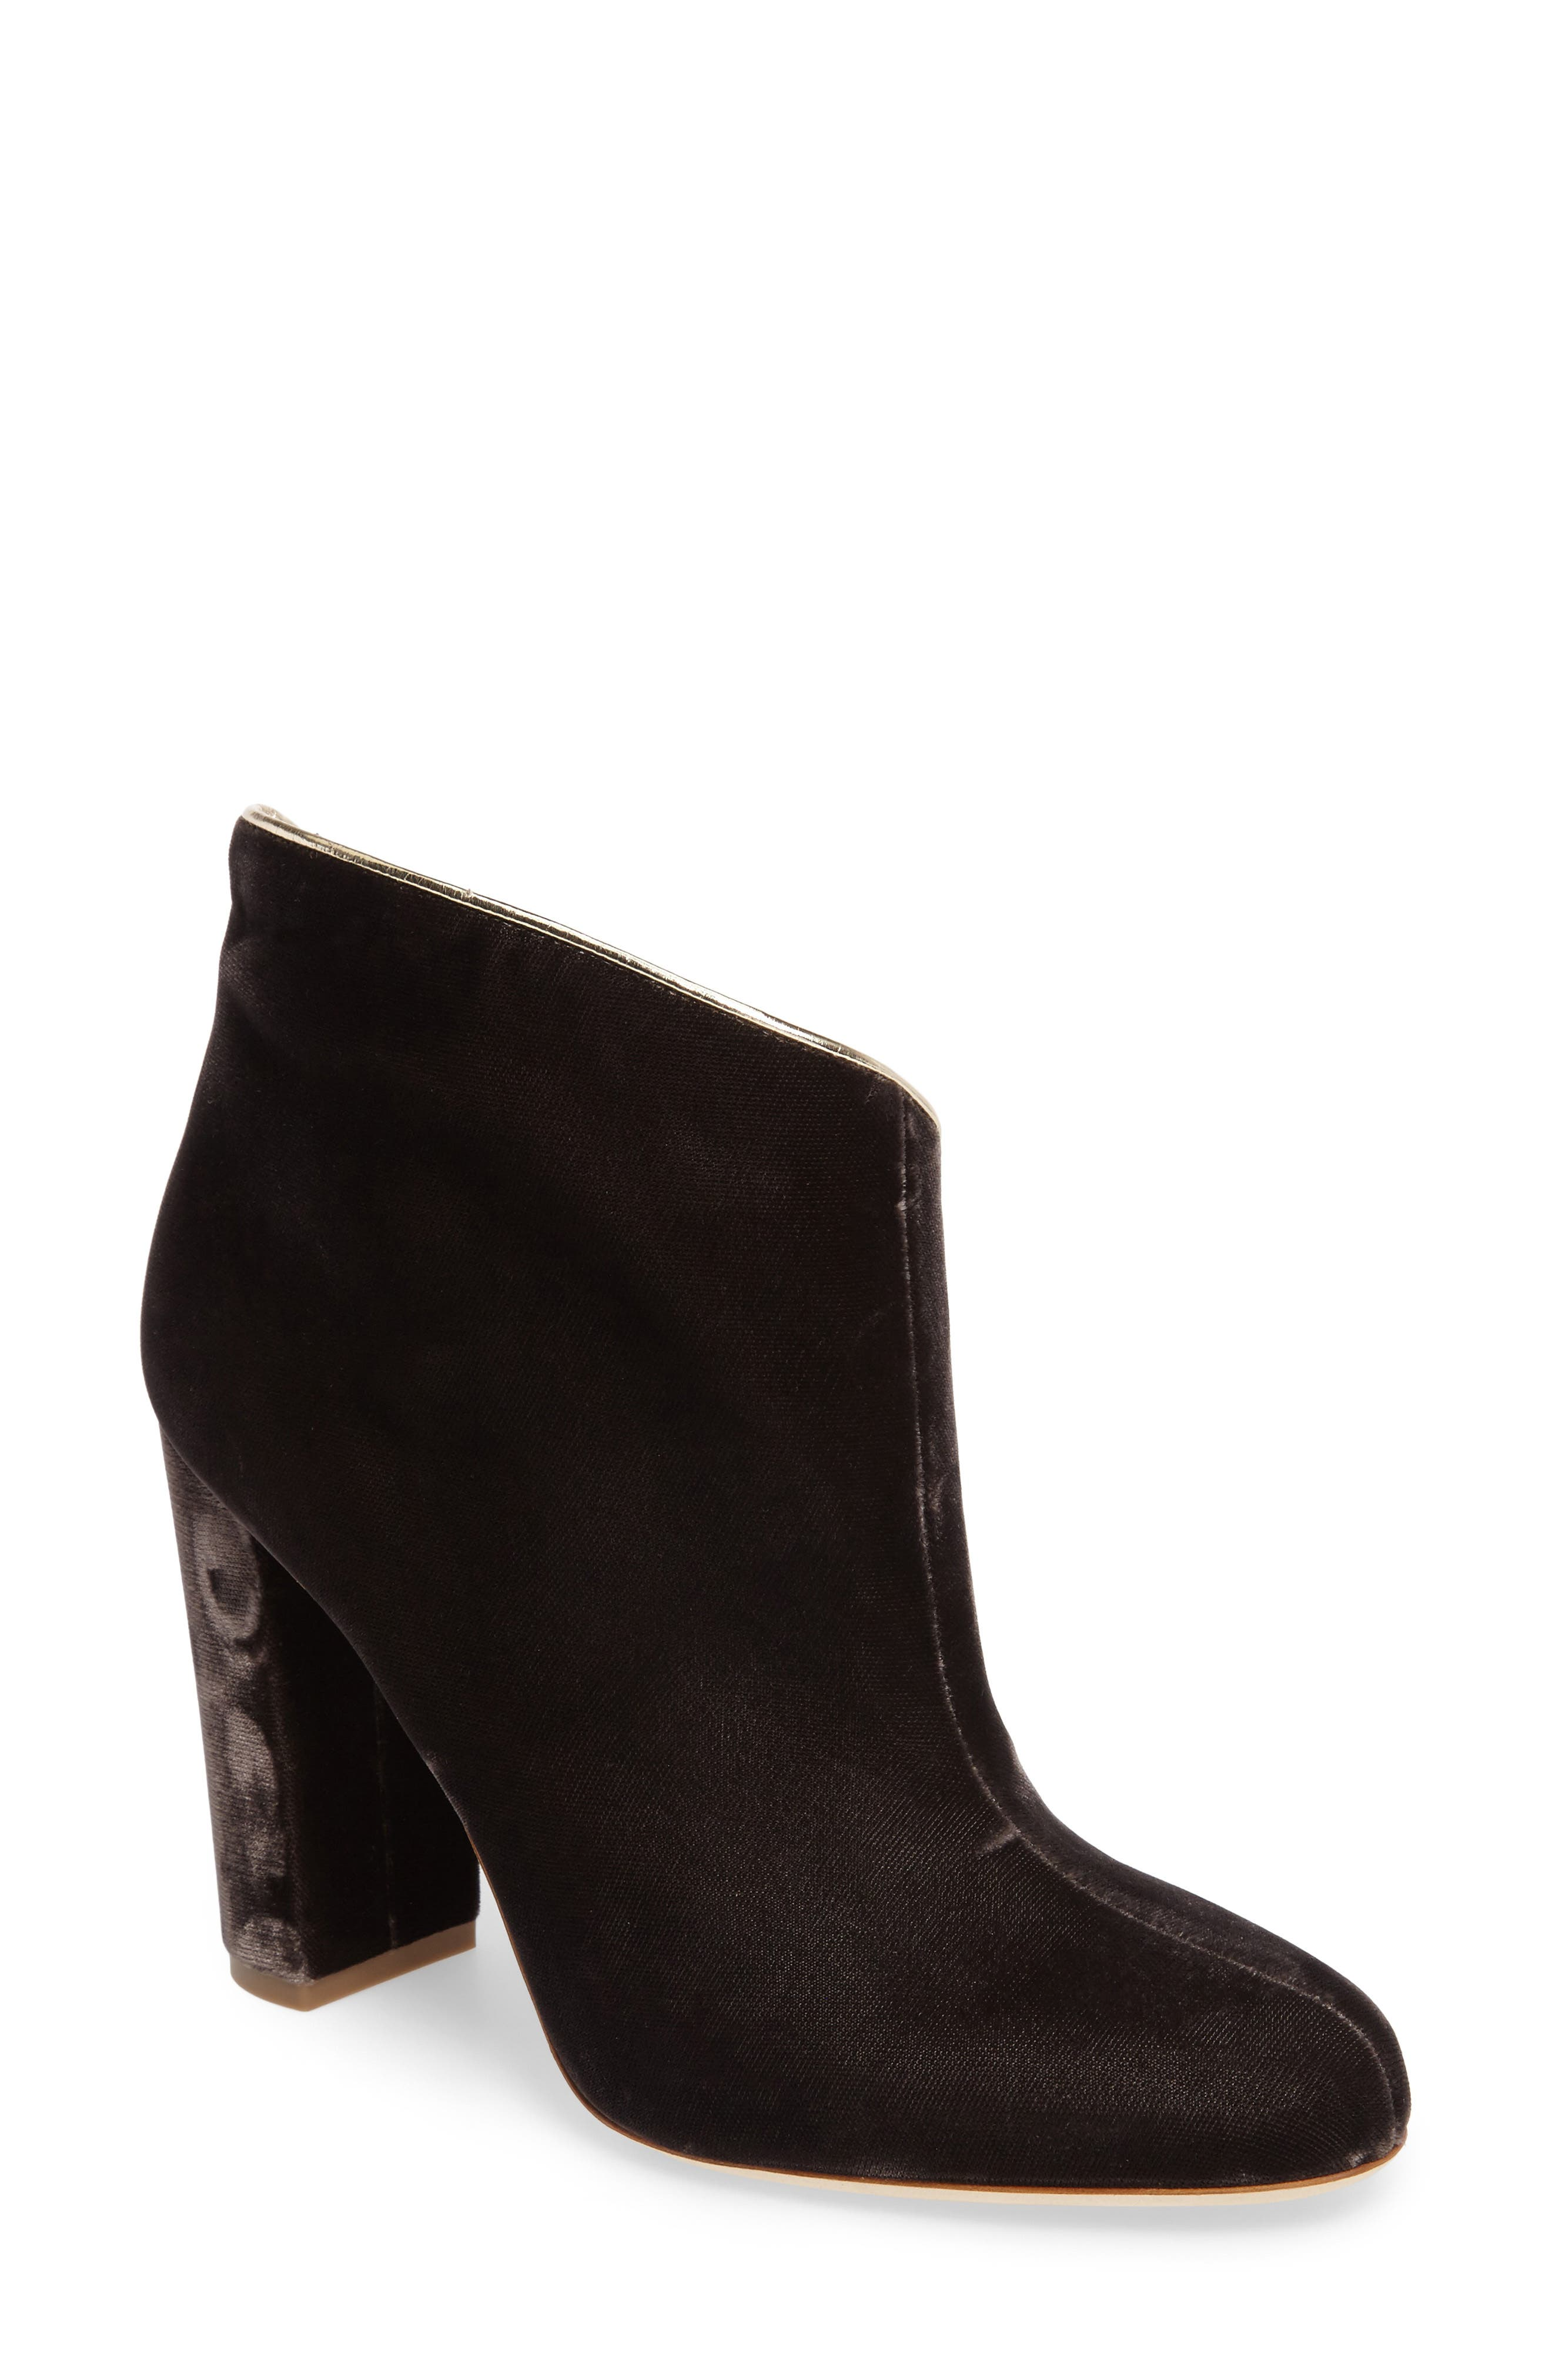 Main Image - Malone Souliers Eula Bootie (Women)